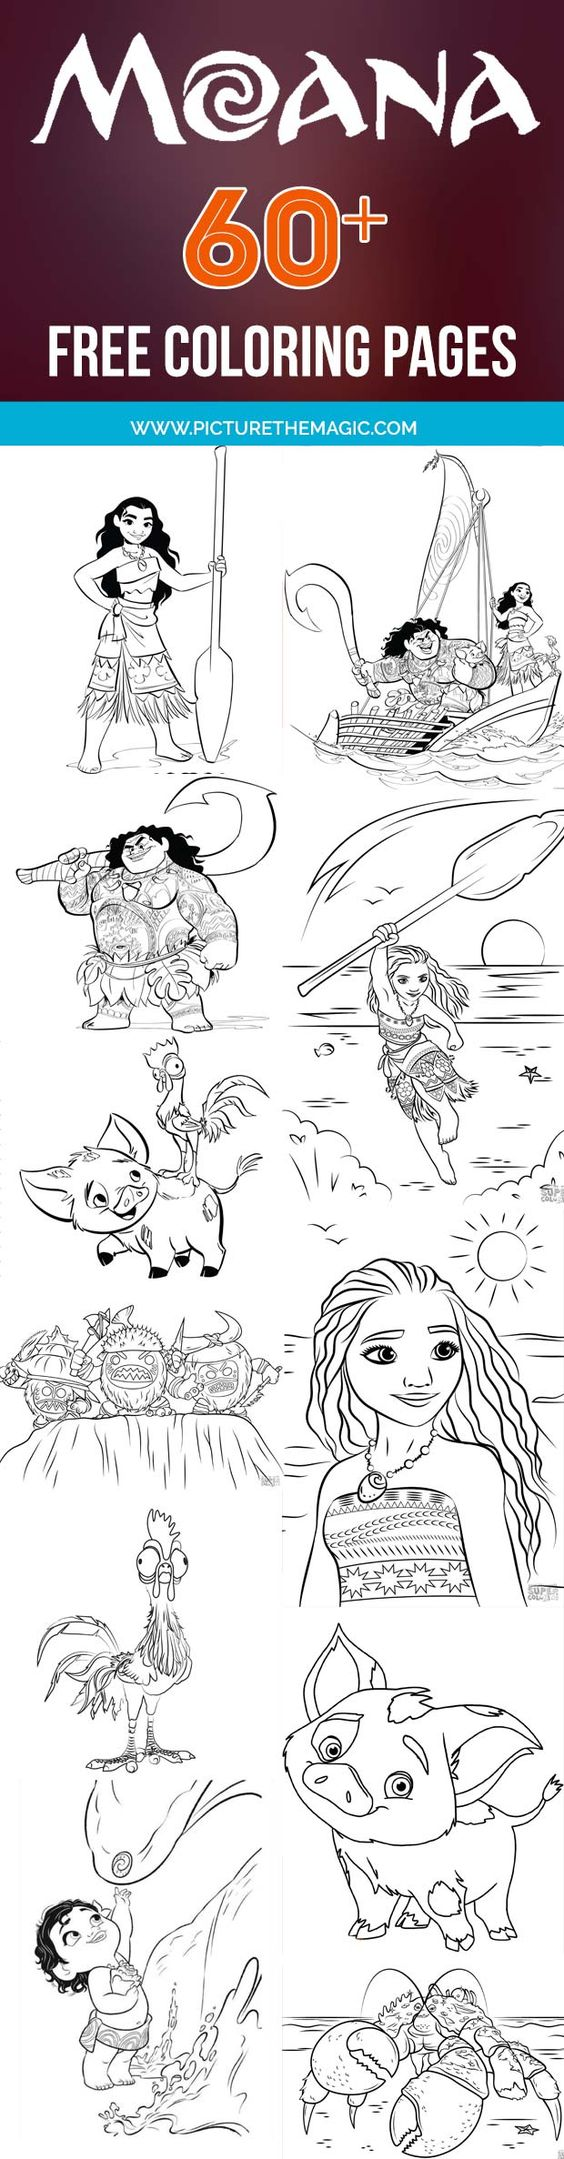 59 Moana Coloring Pages (updated February 2018)